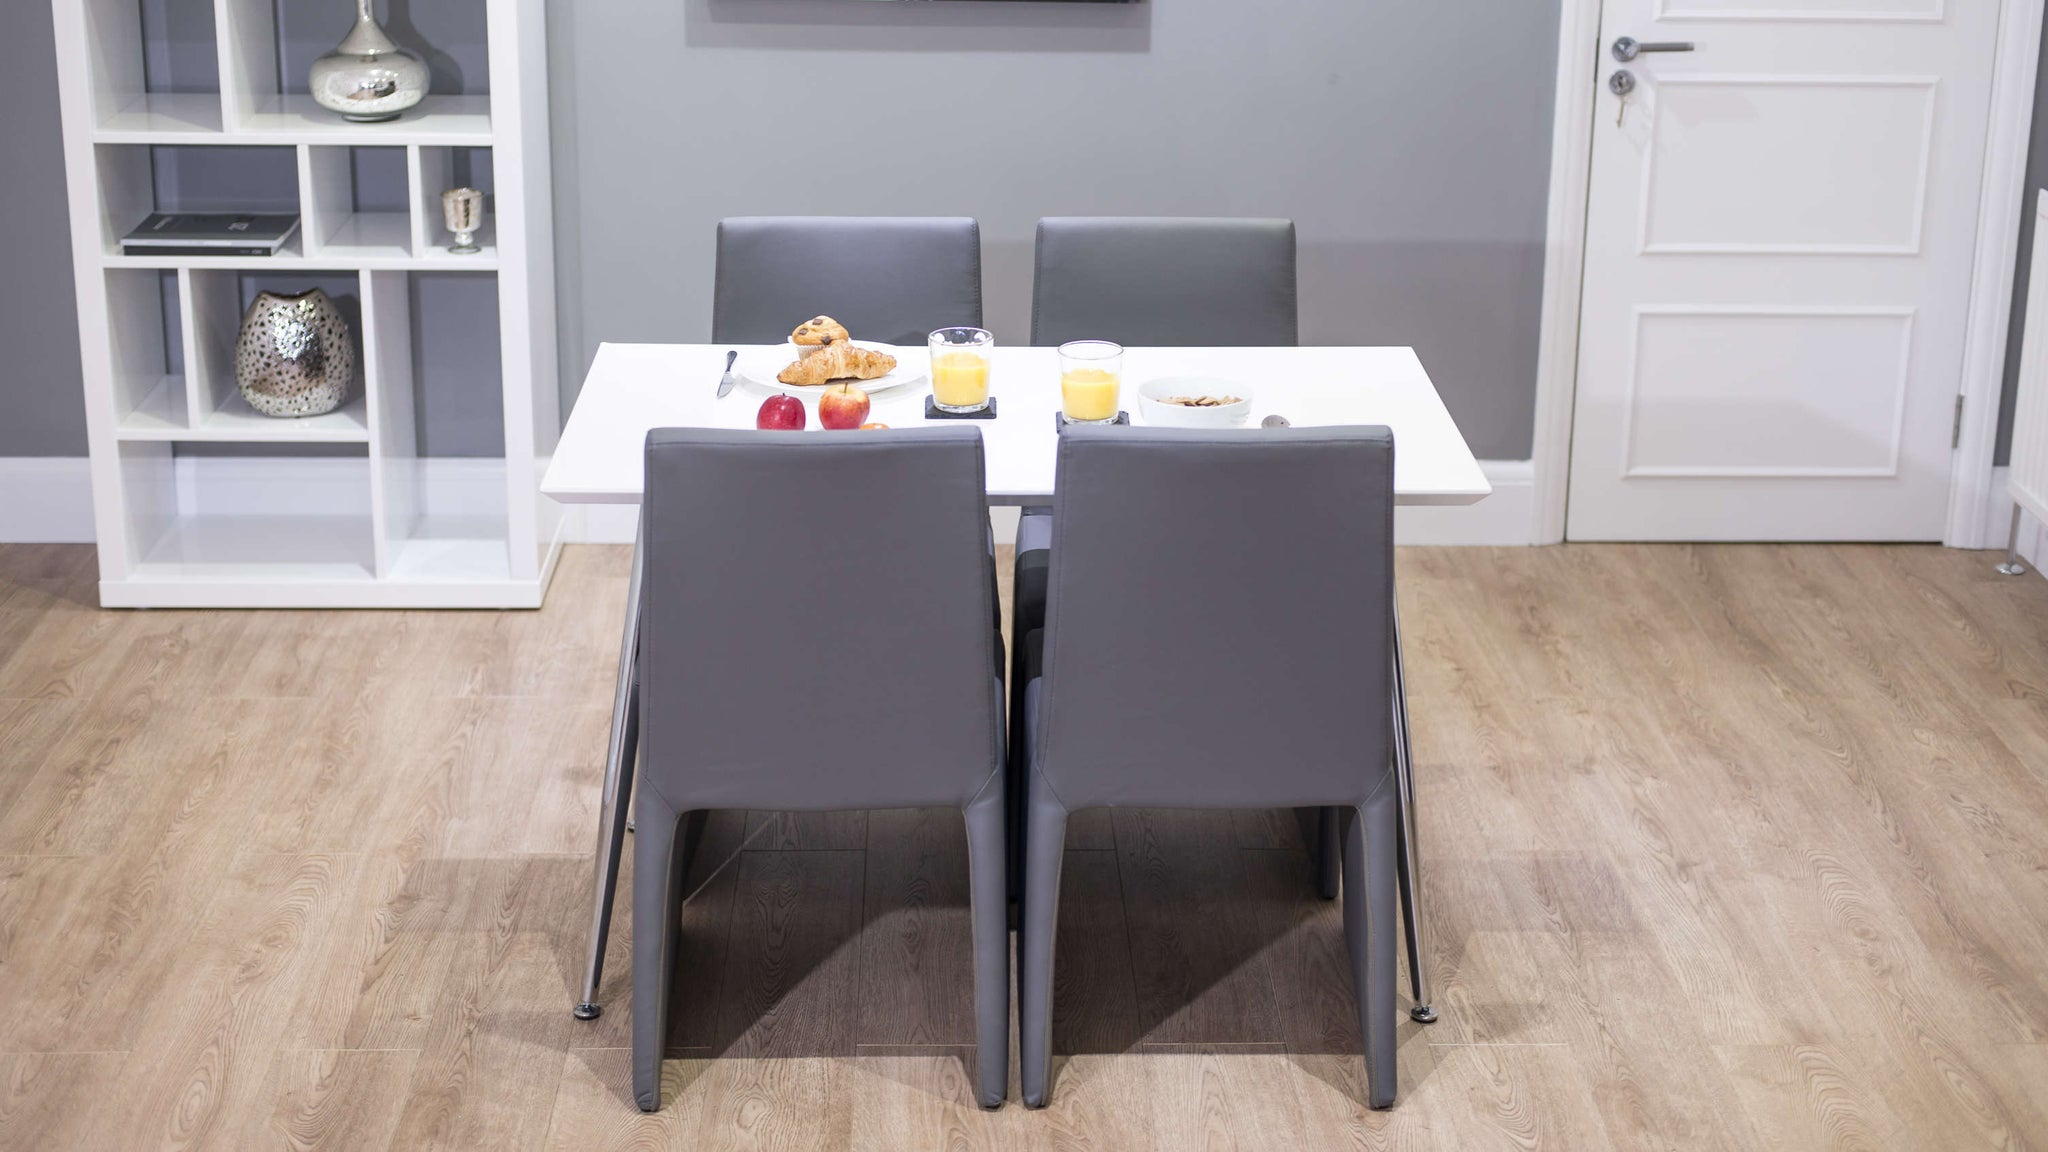 4 Seater White Gloss Dining Table and Box Style Dining Chairs